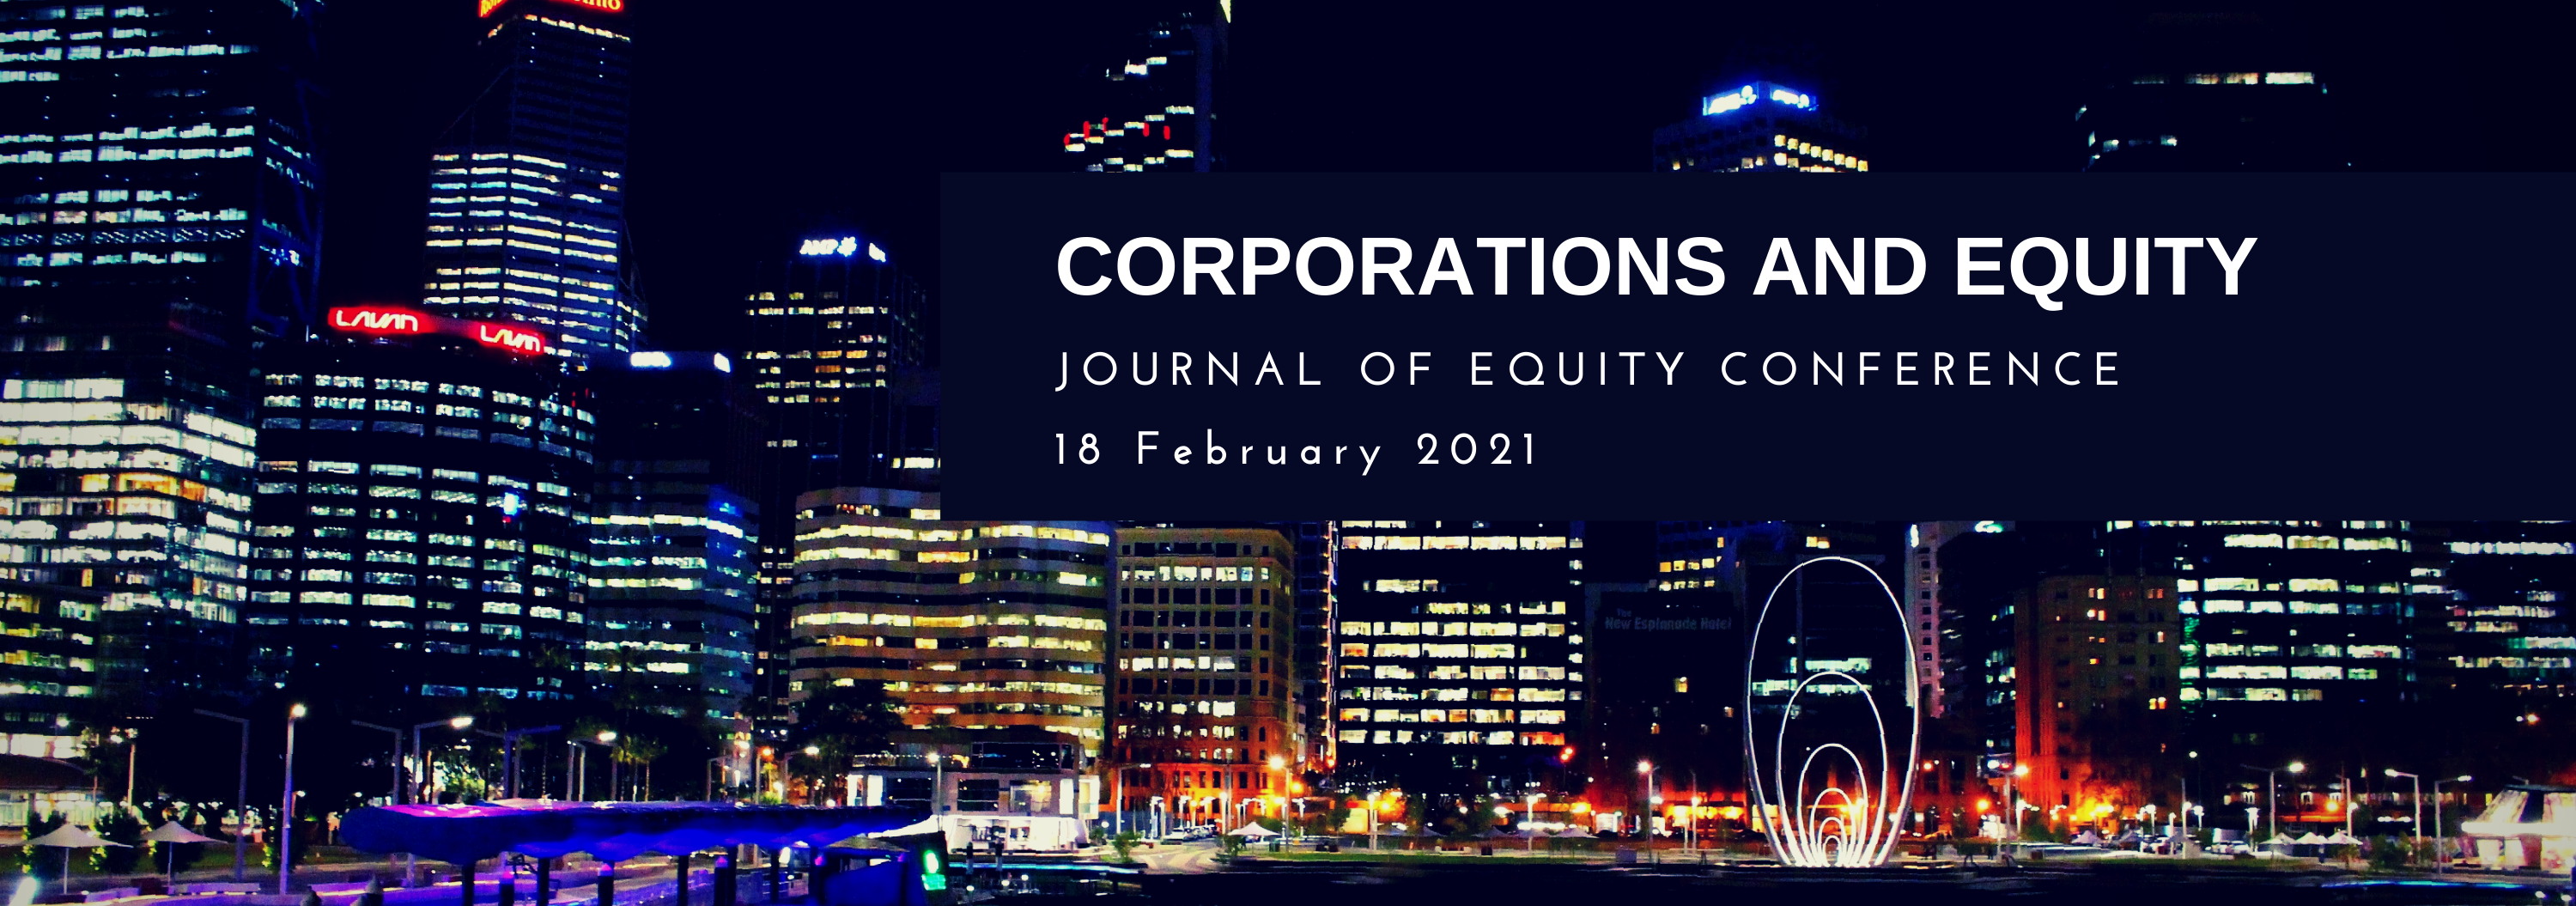 Corporations and Equity 2021 Banner